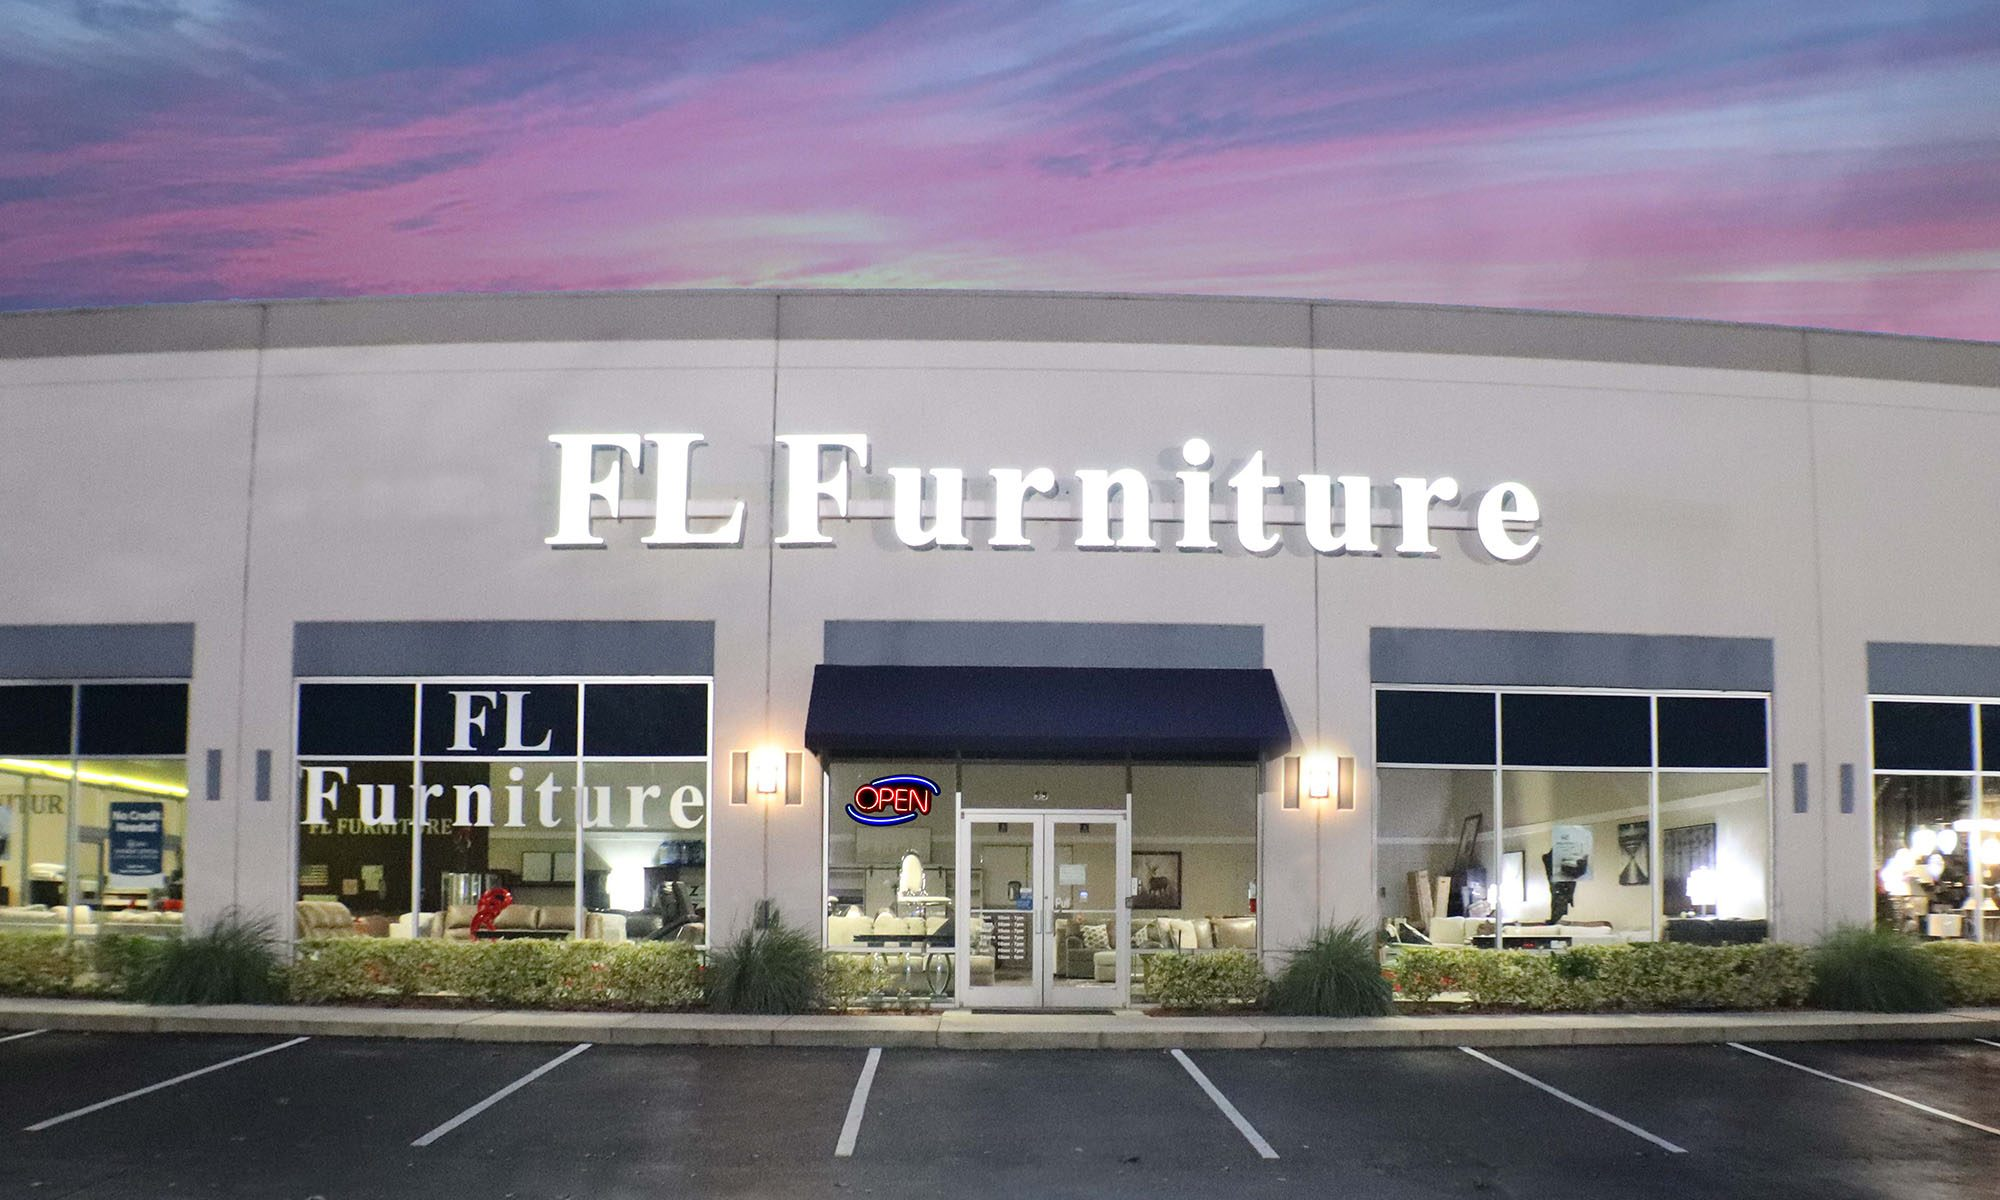 FL Furniture